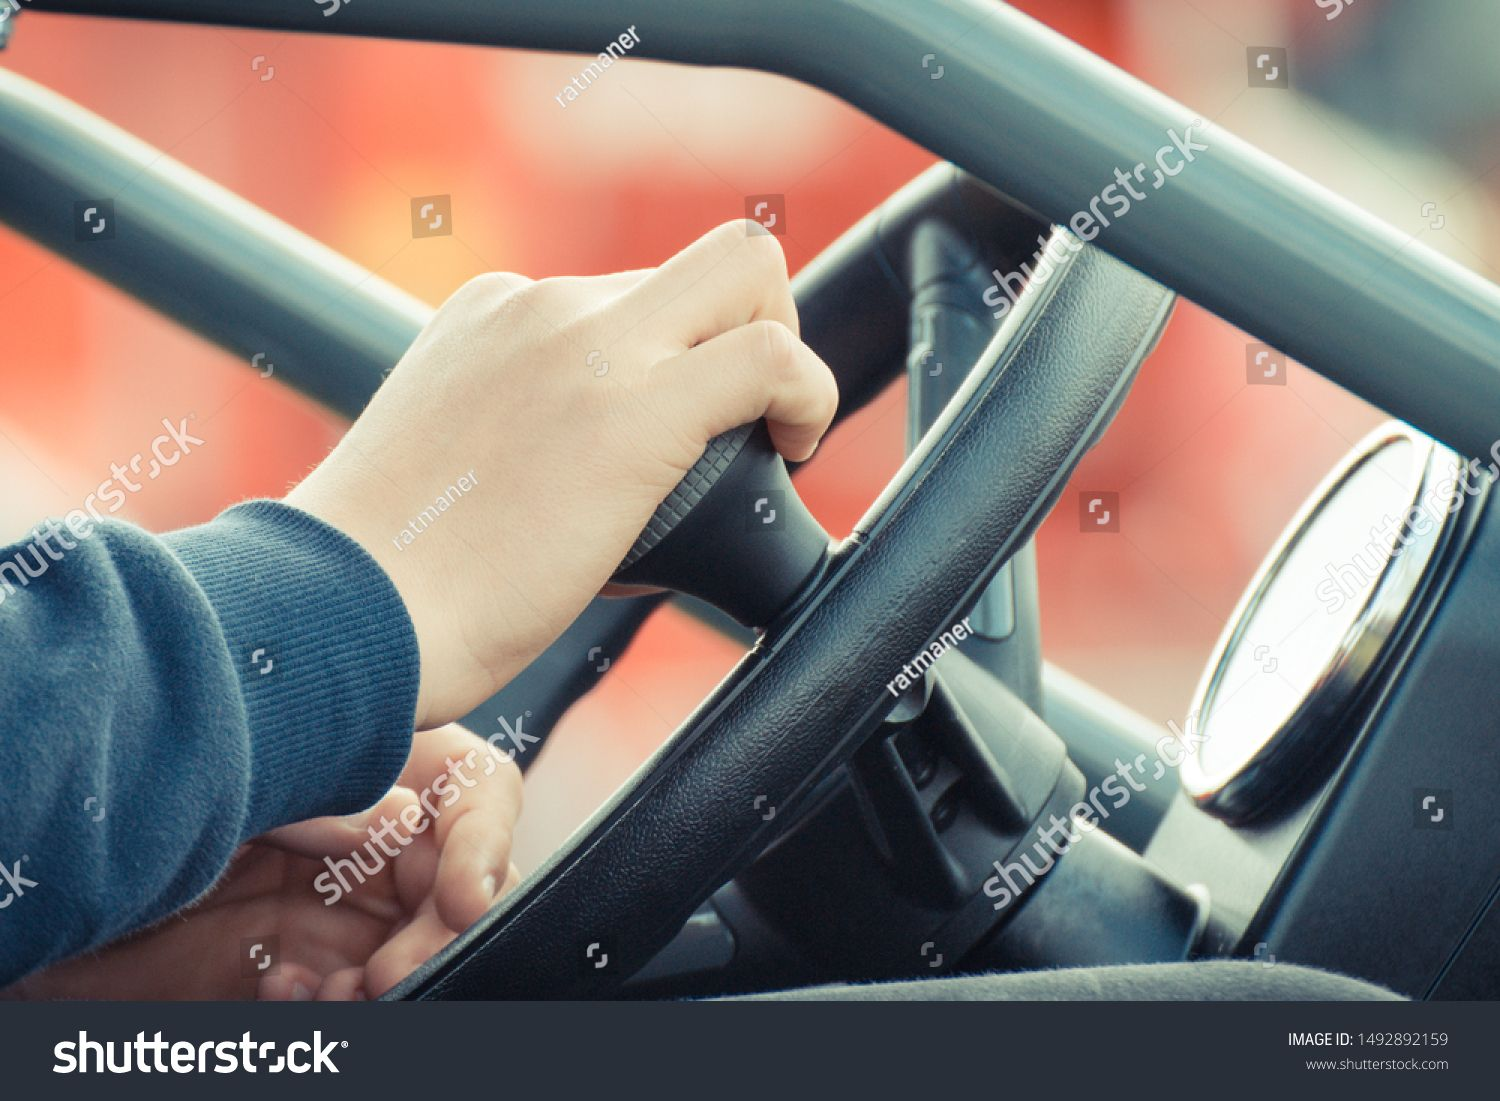 Man operating steering wheel in agricultural or industrial machine, part and detail of vehicle #Ad , #PAID, #wheel#agricultural#steering#Man